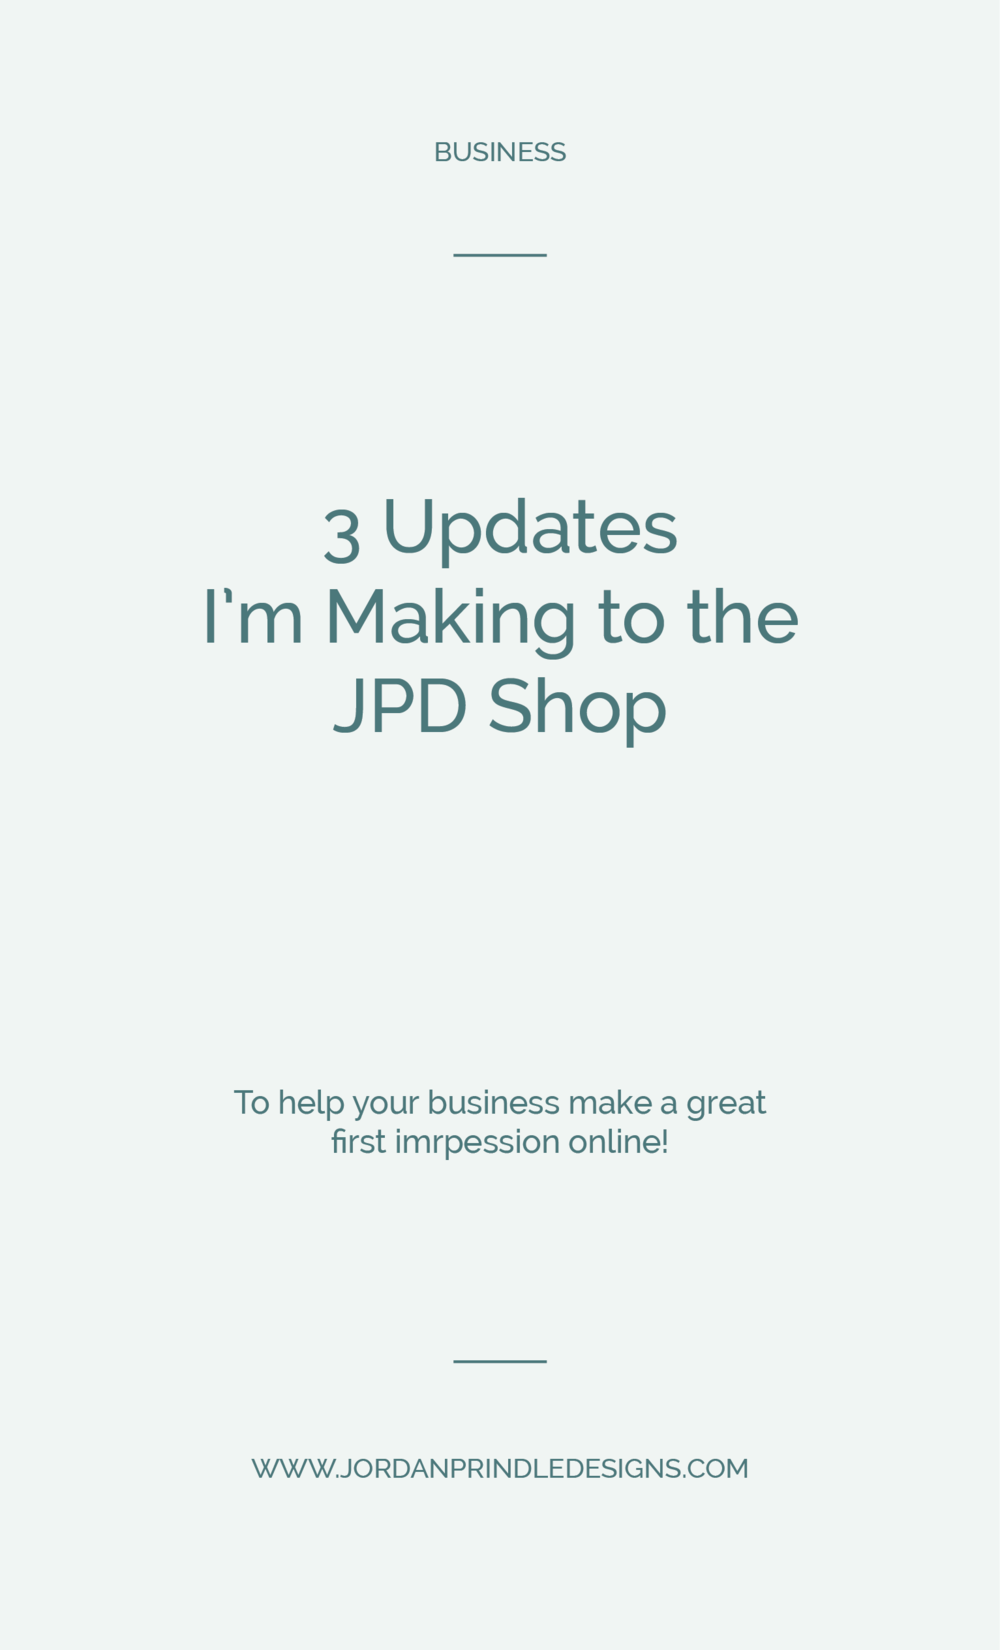 Updates I'm Making to the Jordan Prindle Designs Shop | The shop is getting expanded to add educational resources, designer templates and more! Keep reading at www.jordanprindledesigns.com #businesstemplates #designertemplates #shopnow